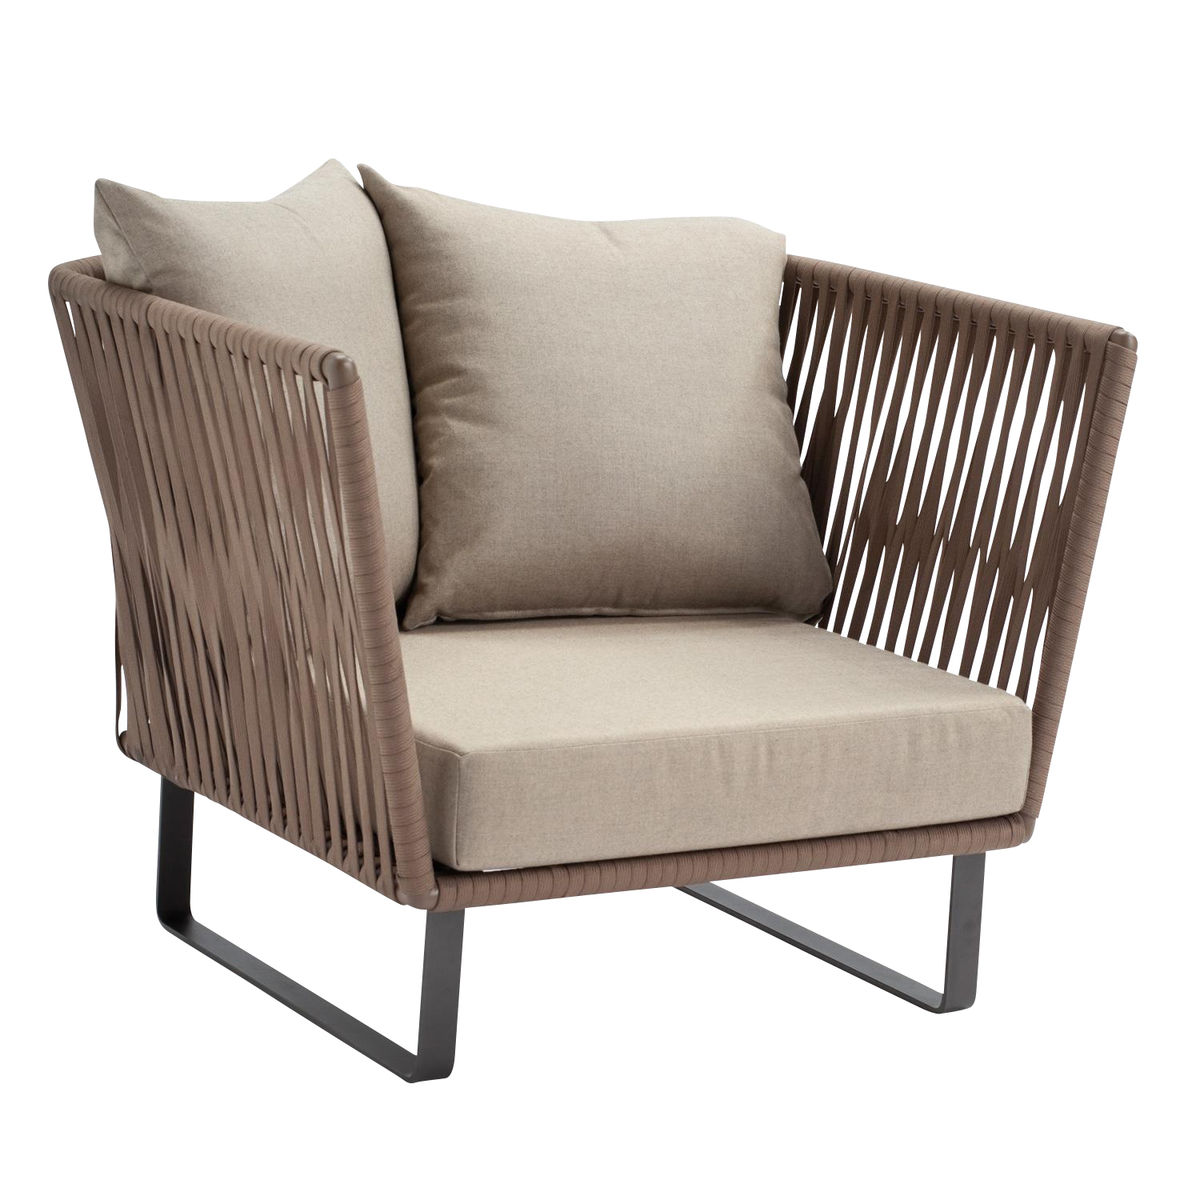 Bitta Club Armchair Garden Chair Kettal